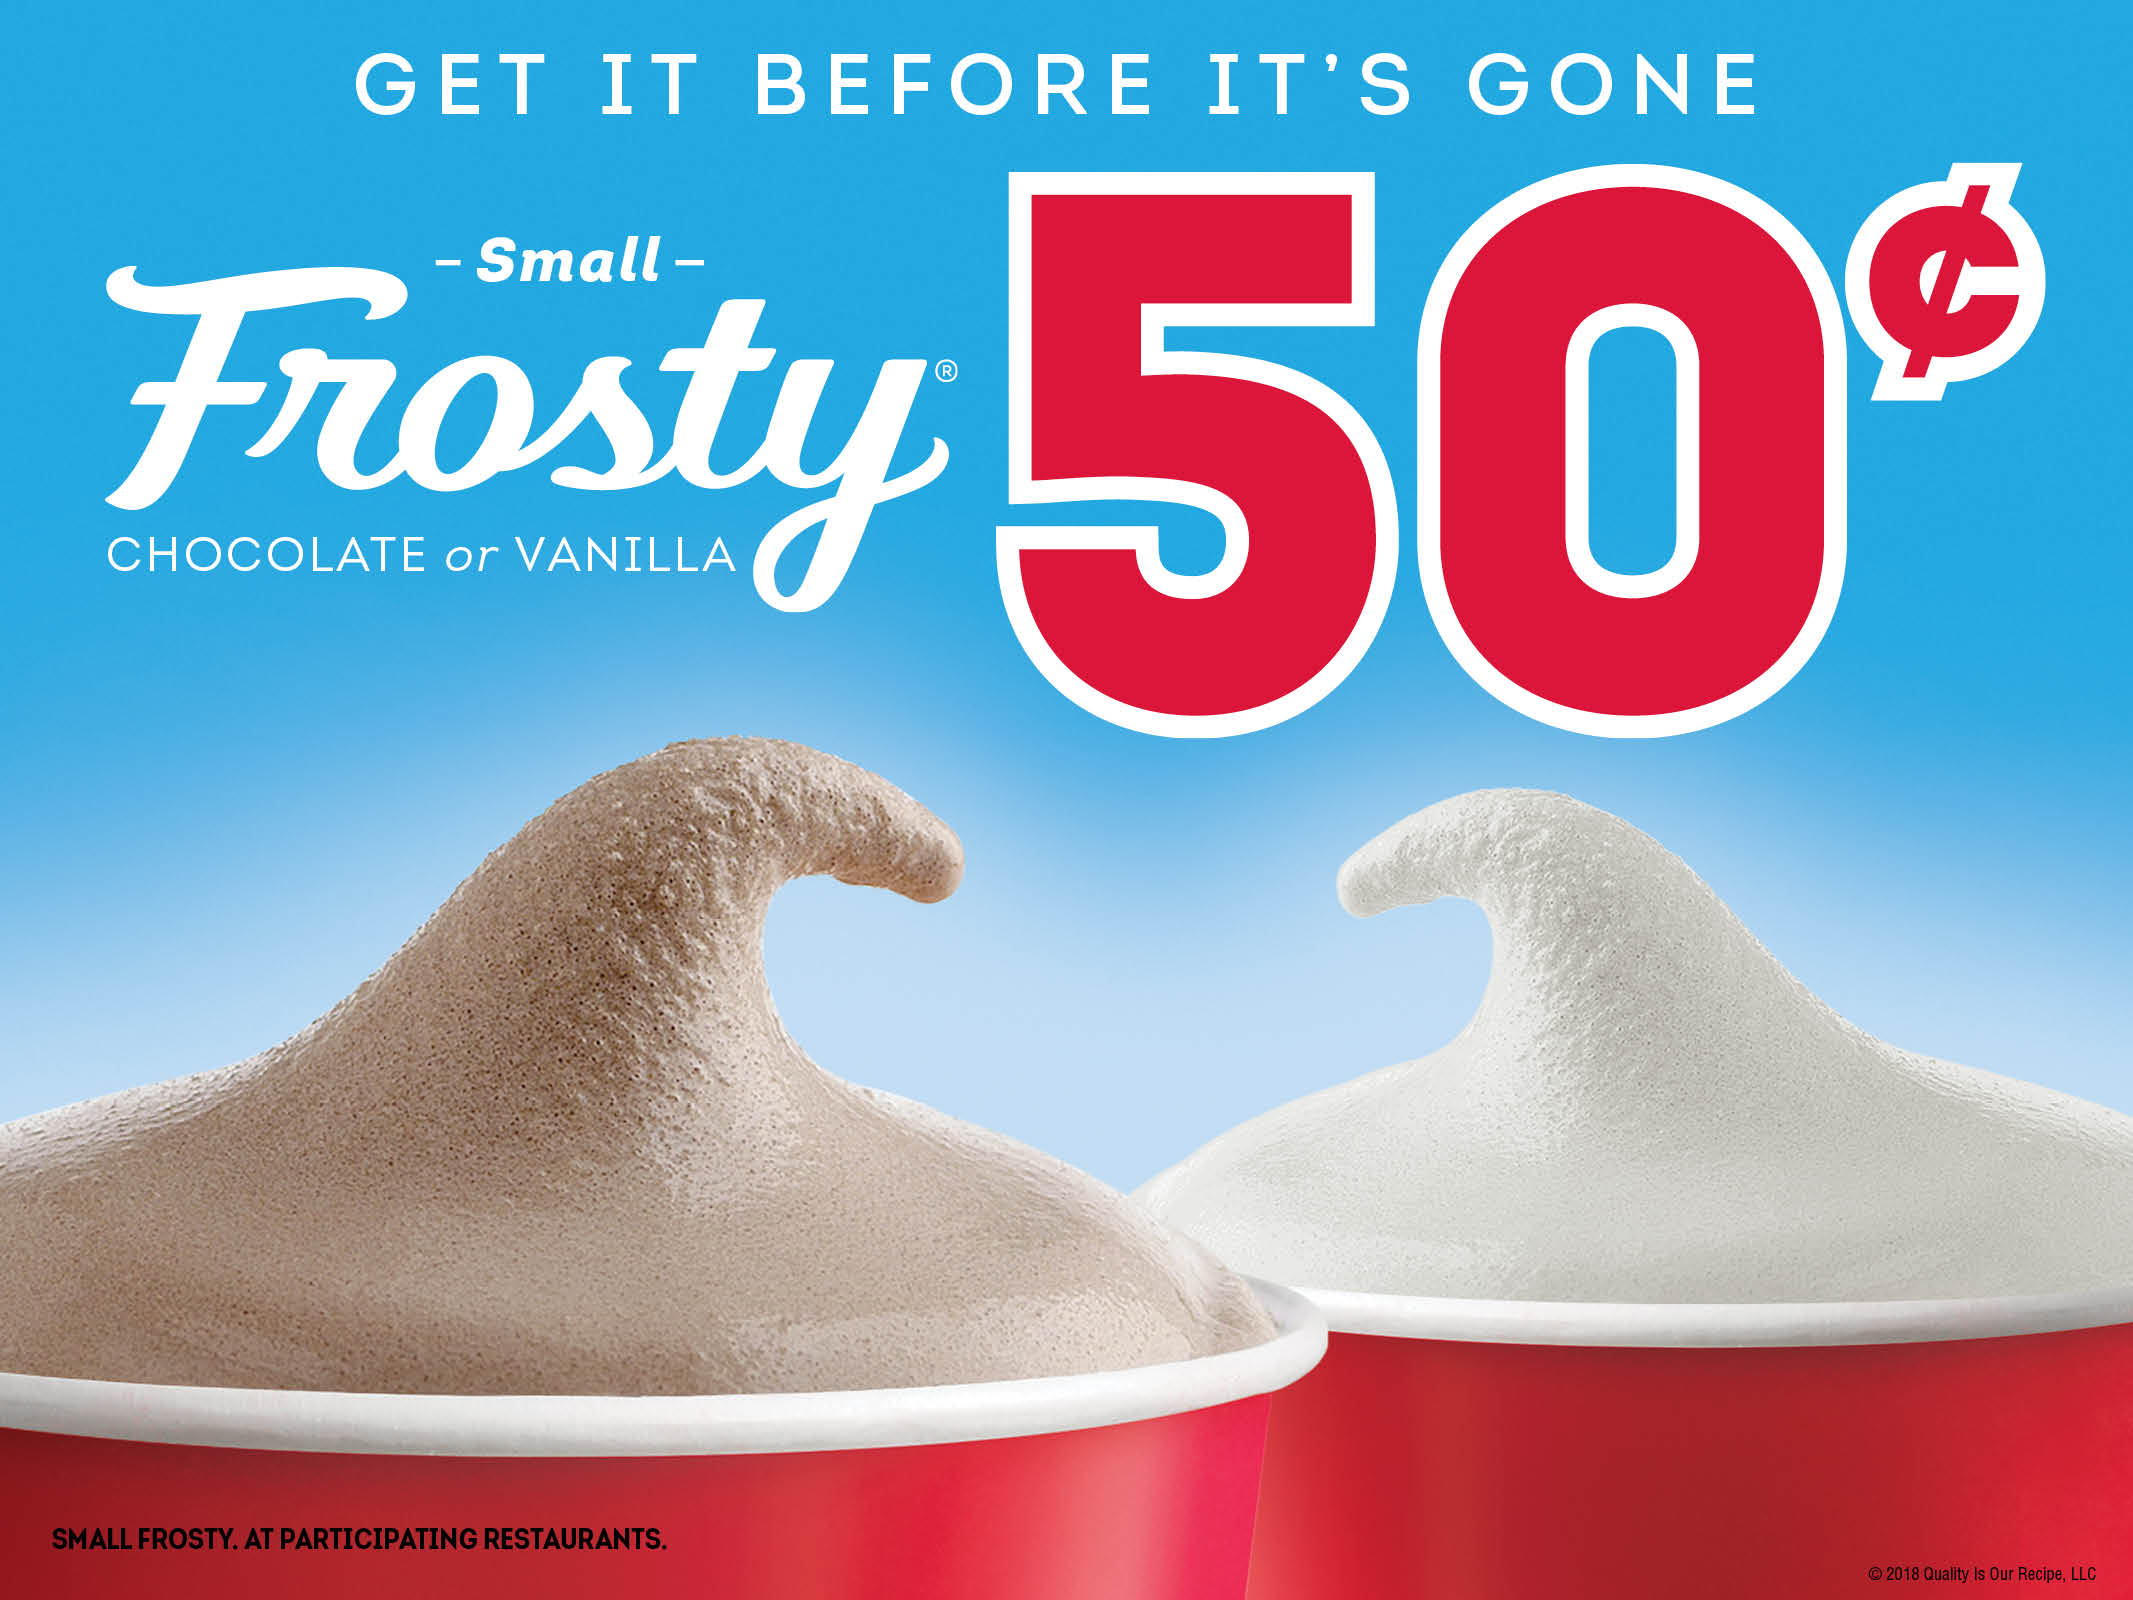 Wendy's-50-Cent-Frosty.JPG